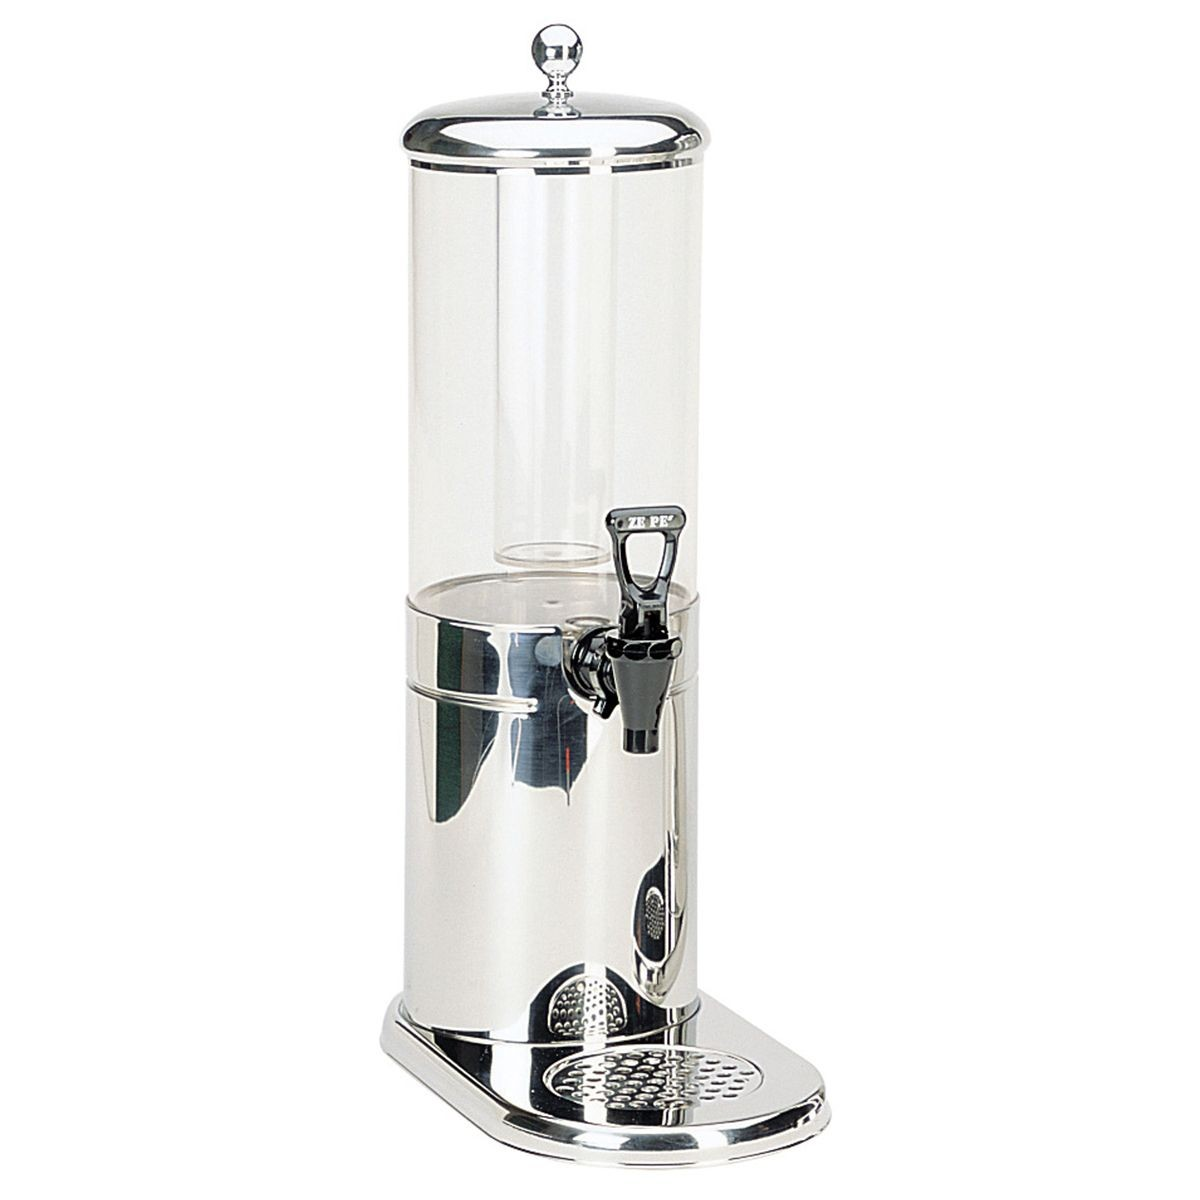 Service Ideas GSP1S4 Ze Pe Stainless Beverage Dispenser, 4 Liter